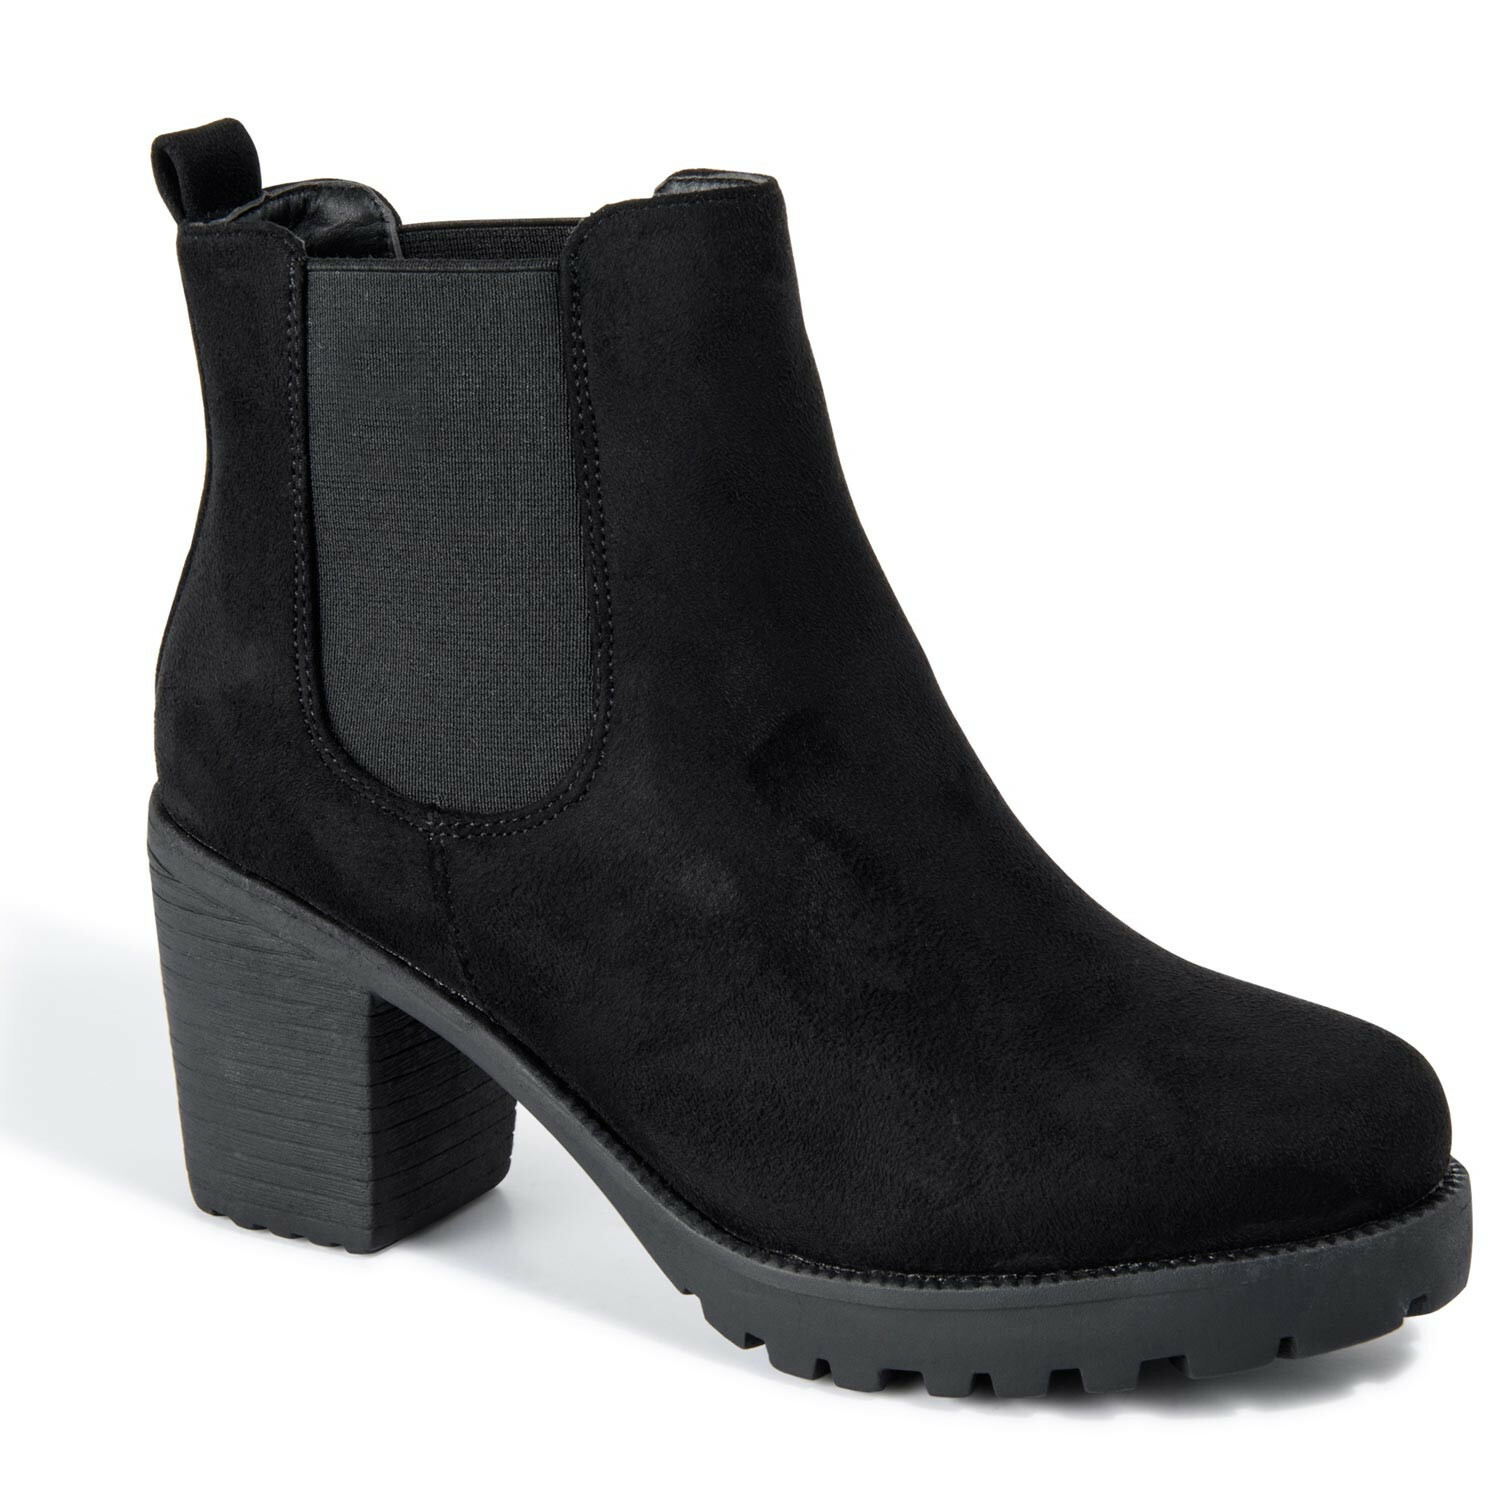 MY PERFECT BLACK BOOTIES